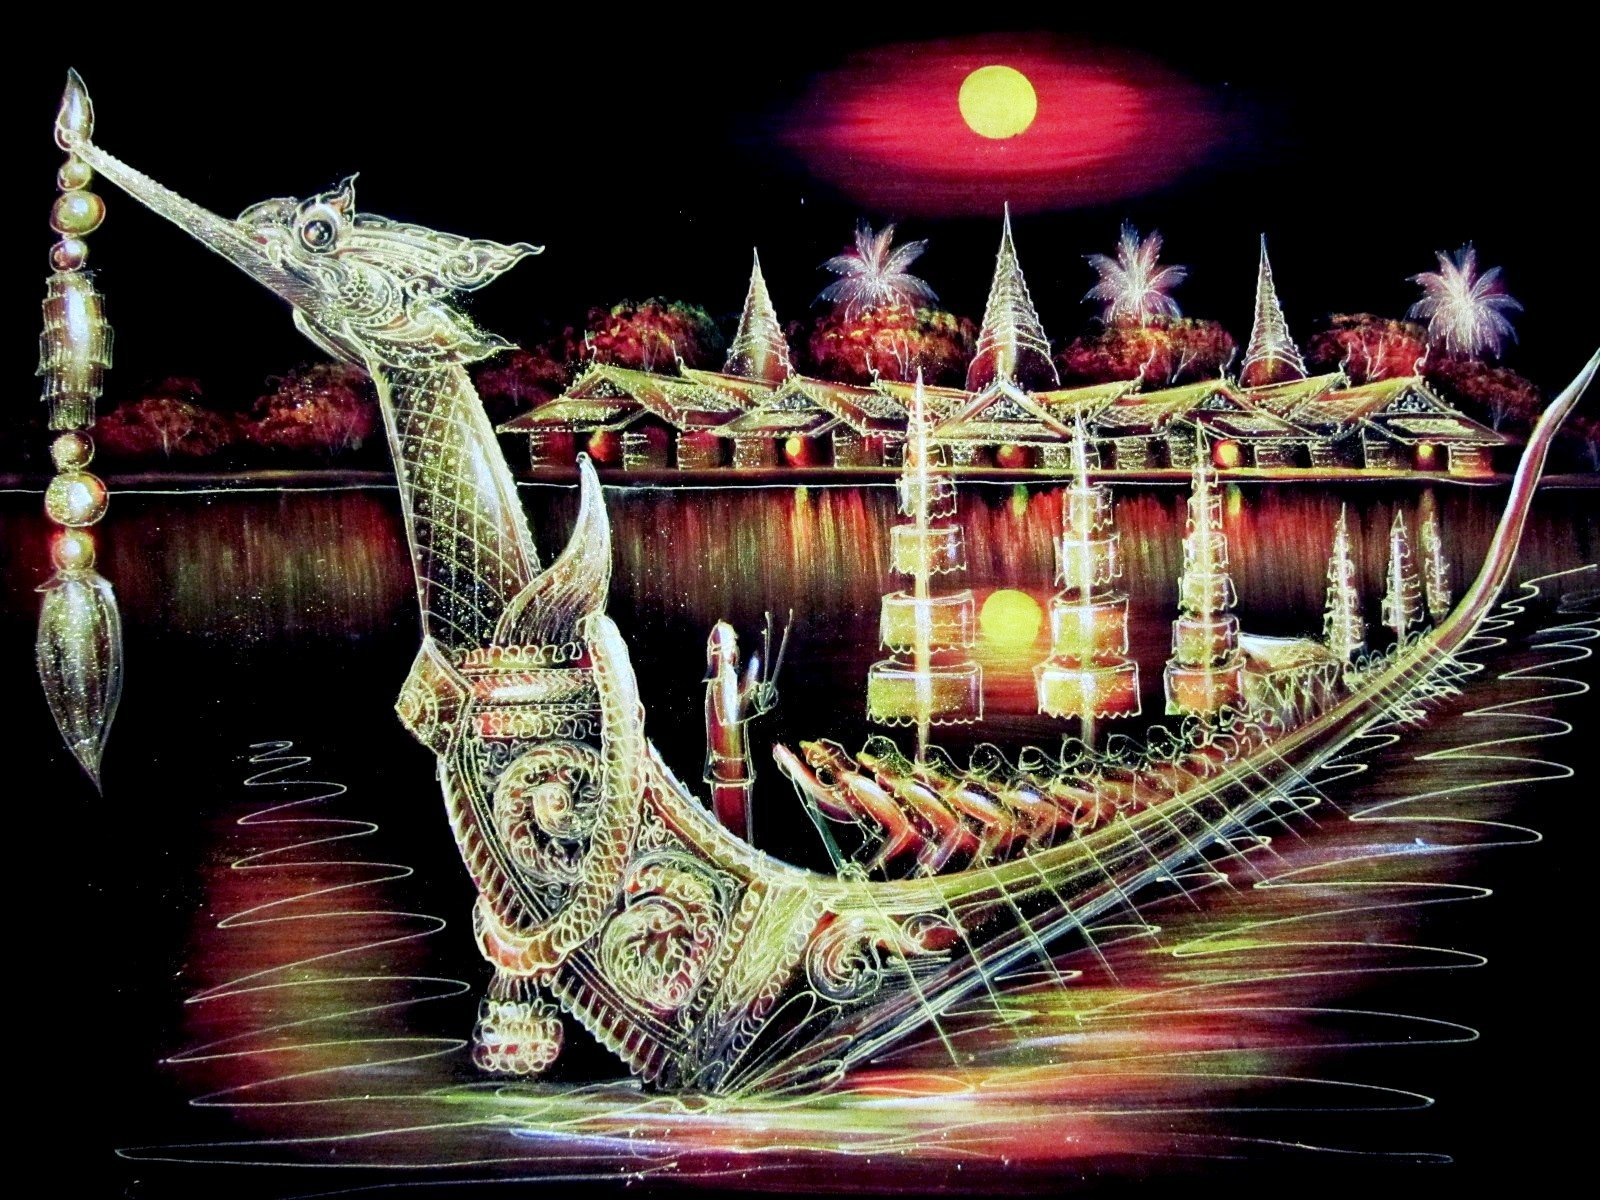 Blue Orchid Hand Painted Royal Thai Barge Scene Wall Art Blacklight Painting on Black Velvet Canvas Unframed 39'' x 27'' by Blue Orchid